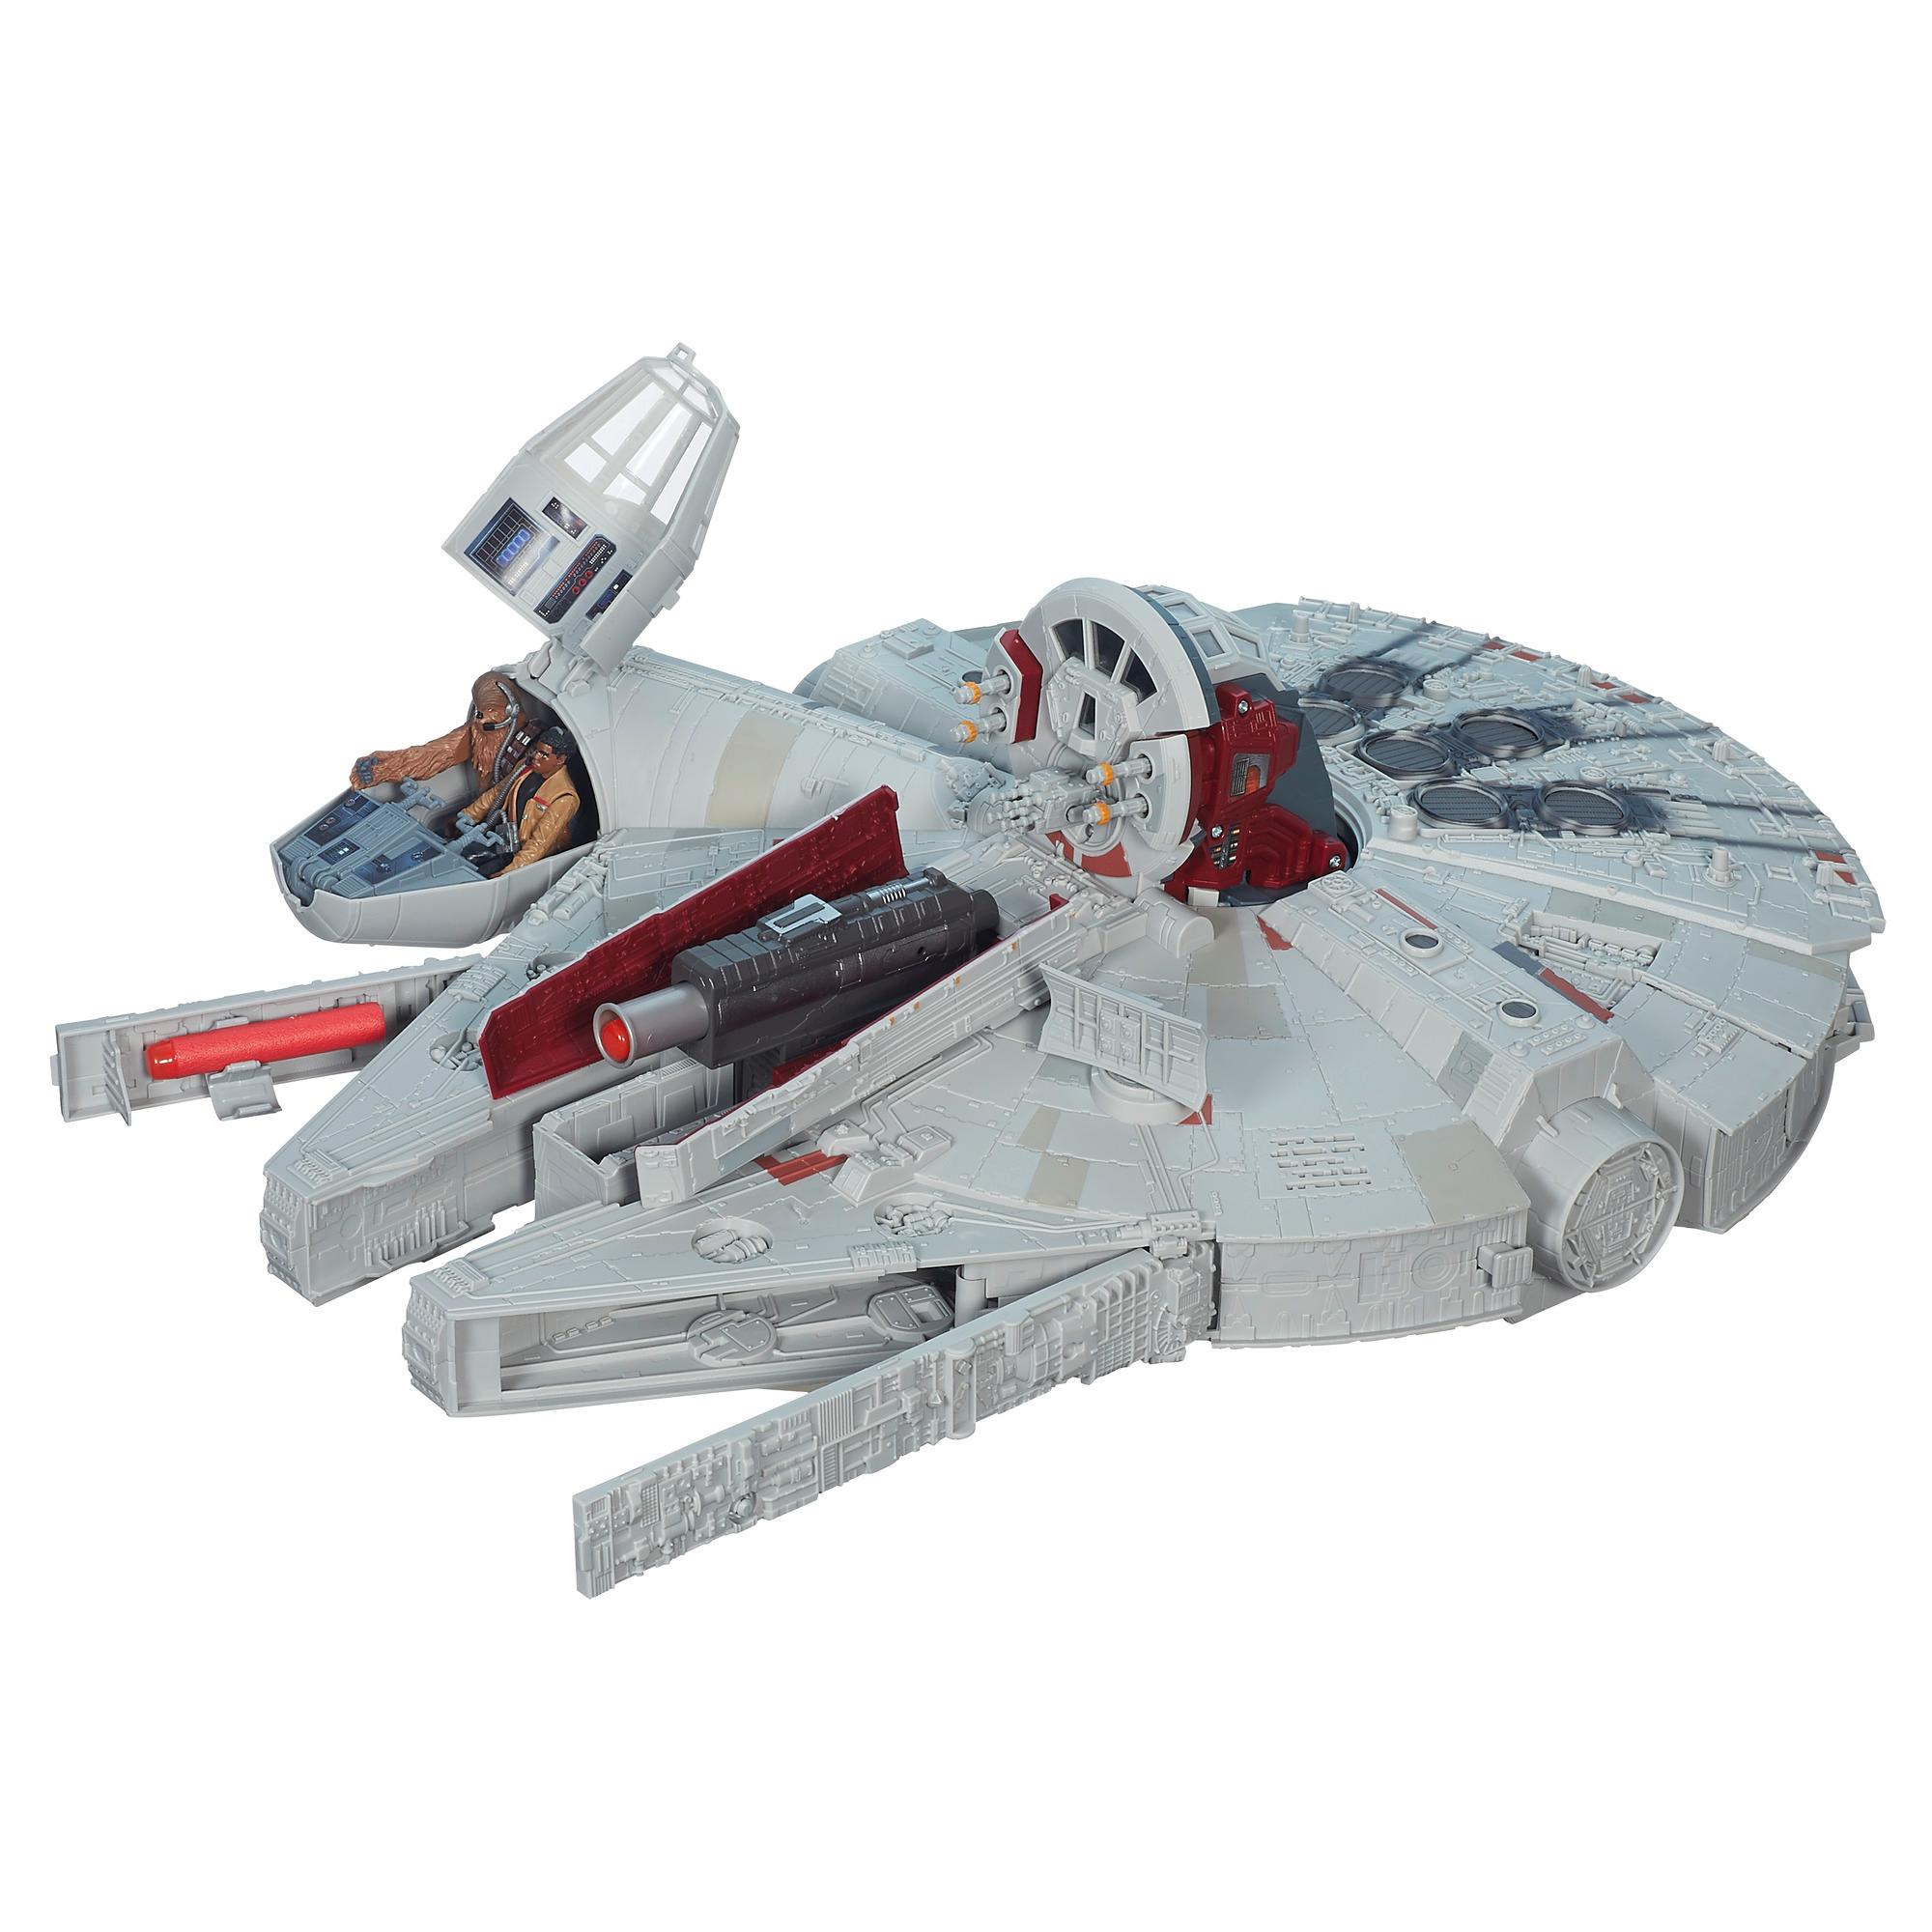 iCollec Star Wars Command – A8949 – Millennium Falcon – 7